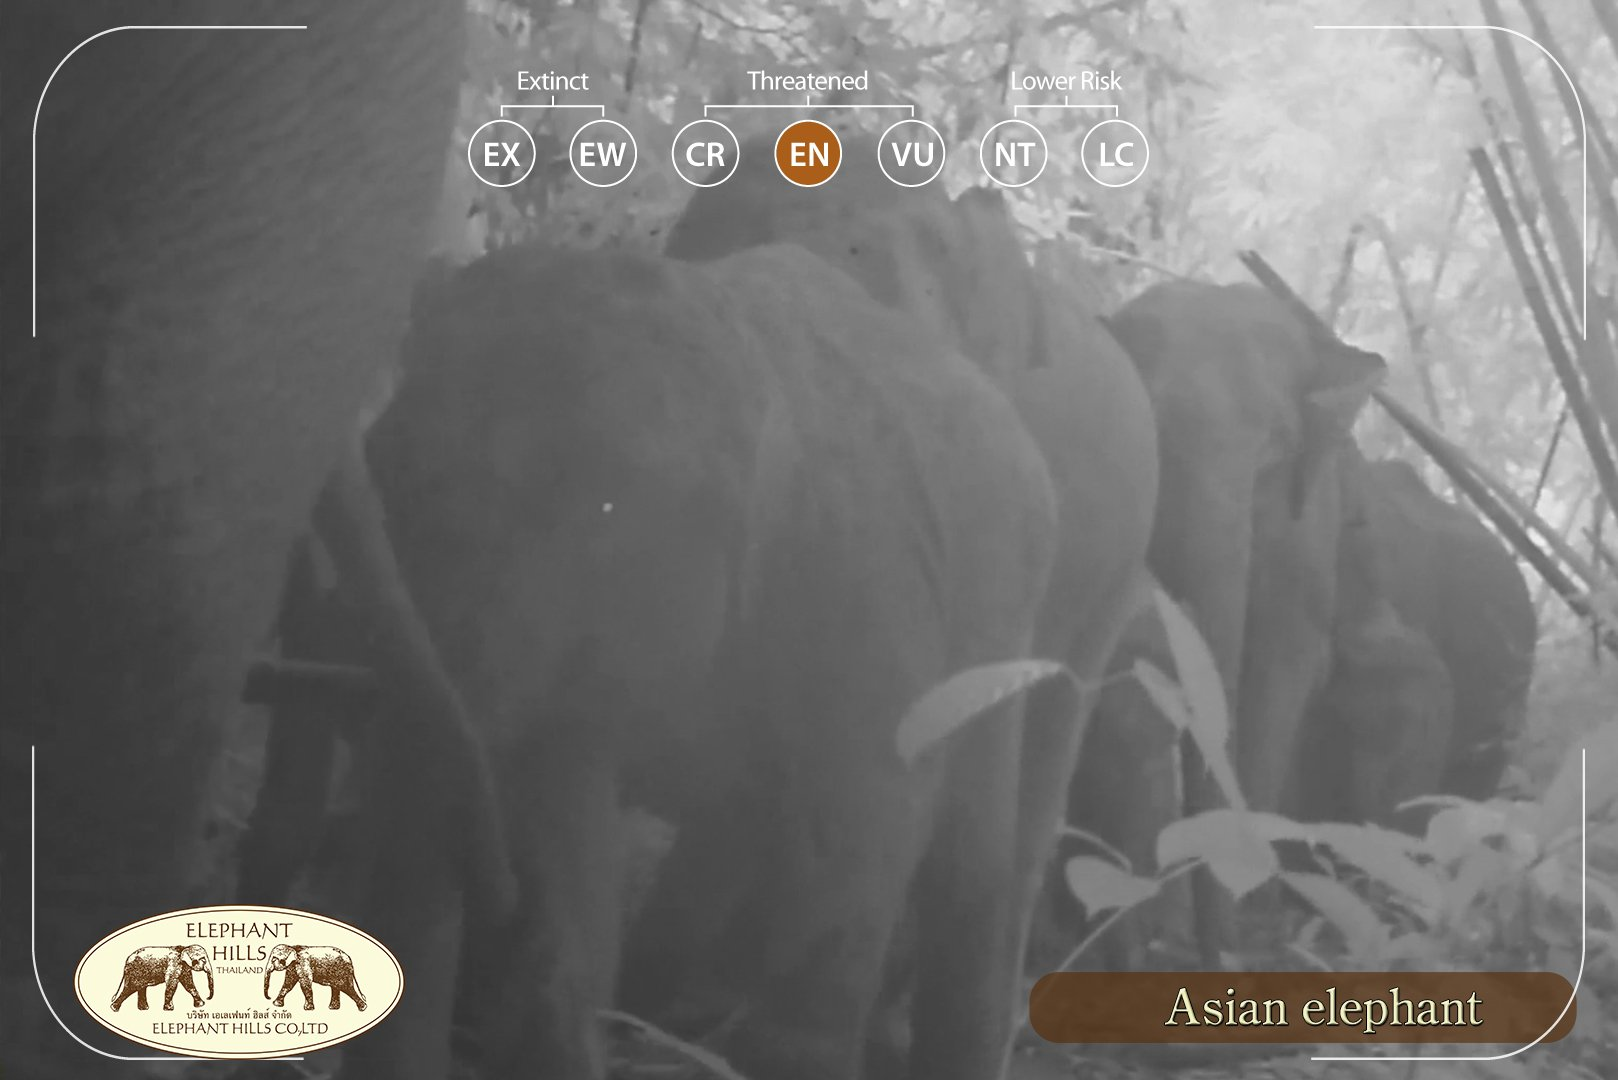 Elephant herd in Elephant Hills' camera of Wildlife Monitoring Project